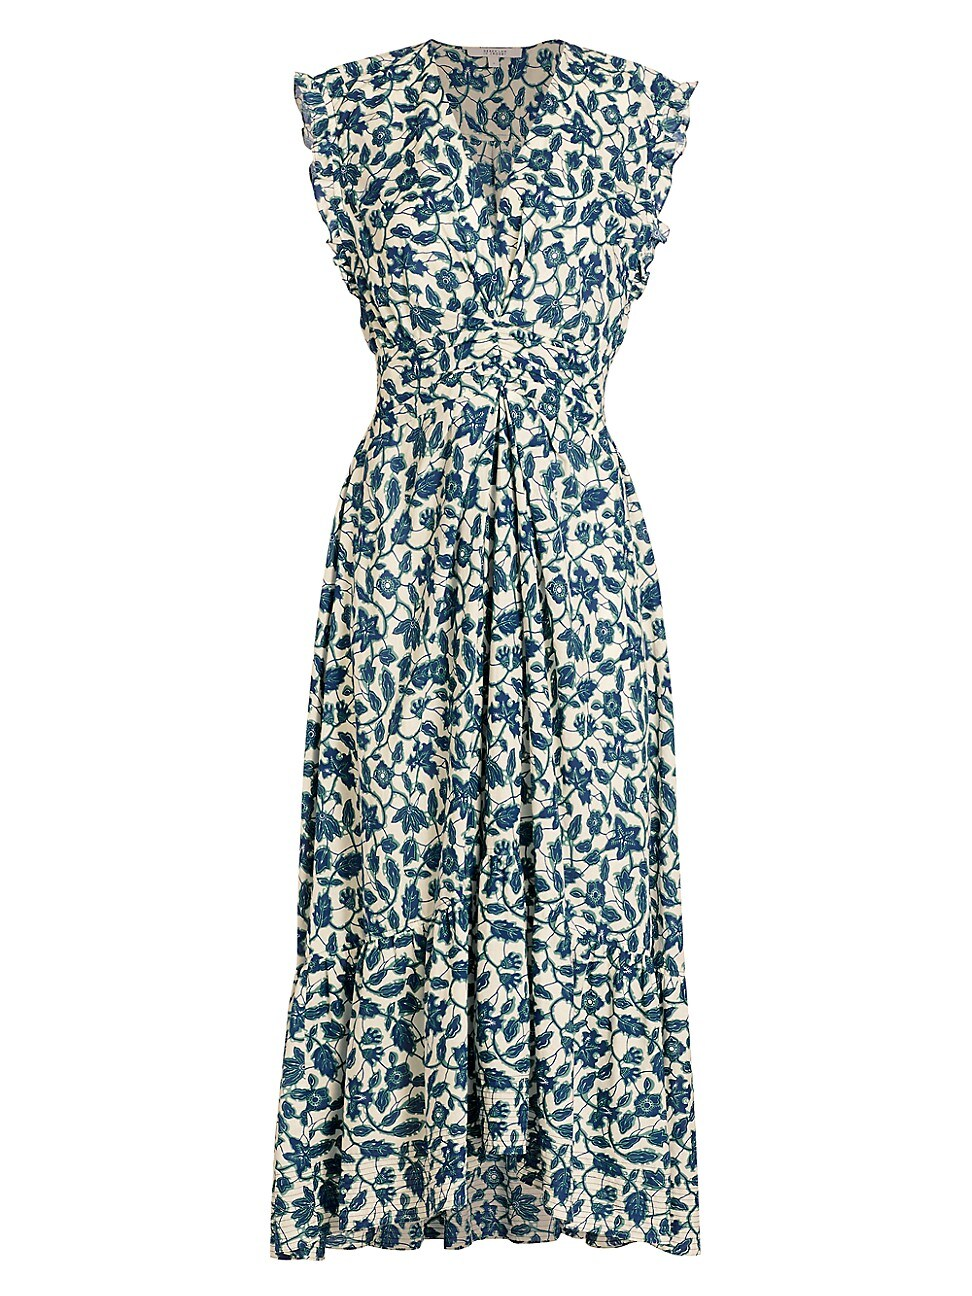 Derek Lam 10 Crosby WOMEN'S KRIS FLORAL SLEEVELESS MAXI DRESS